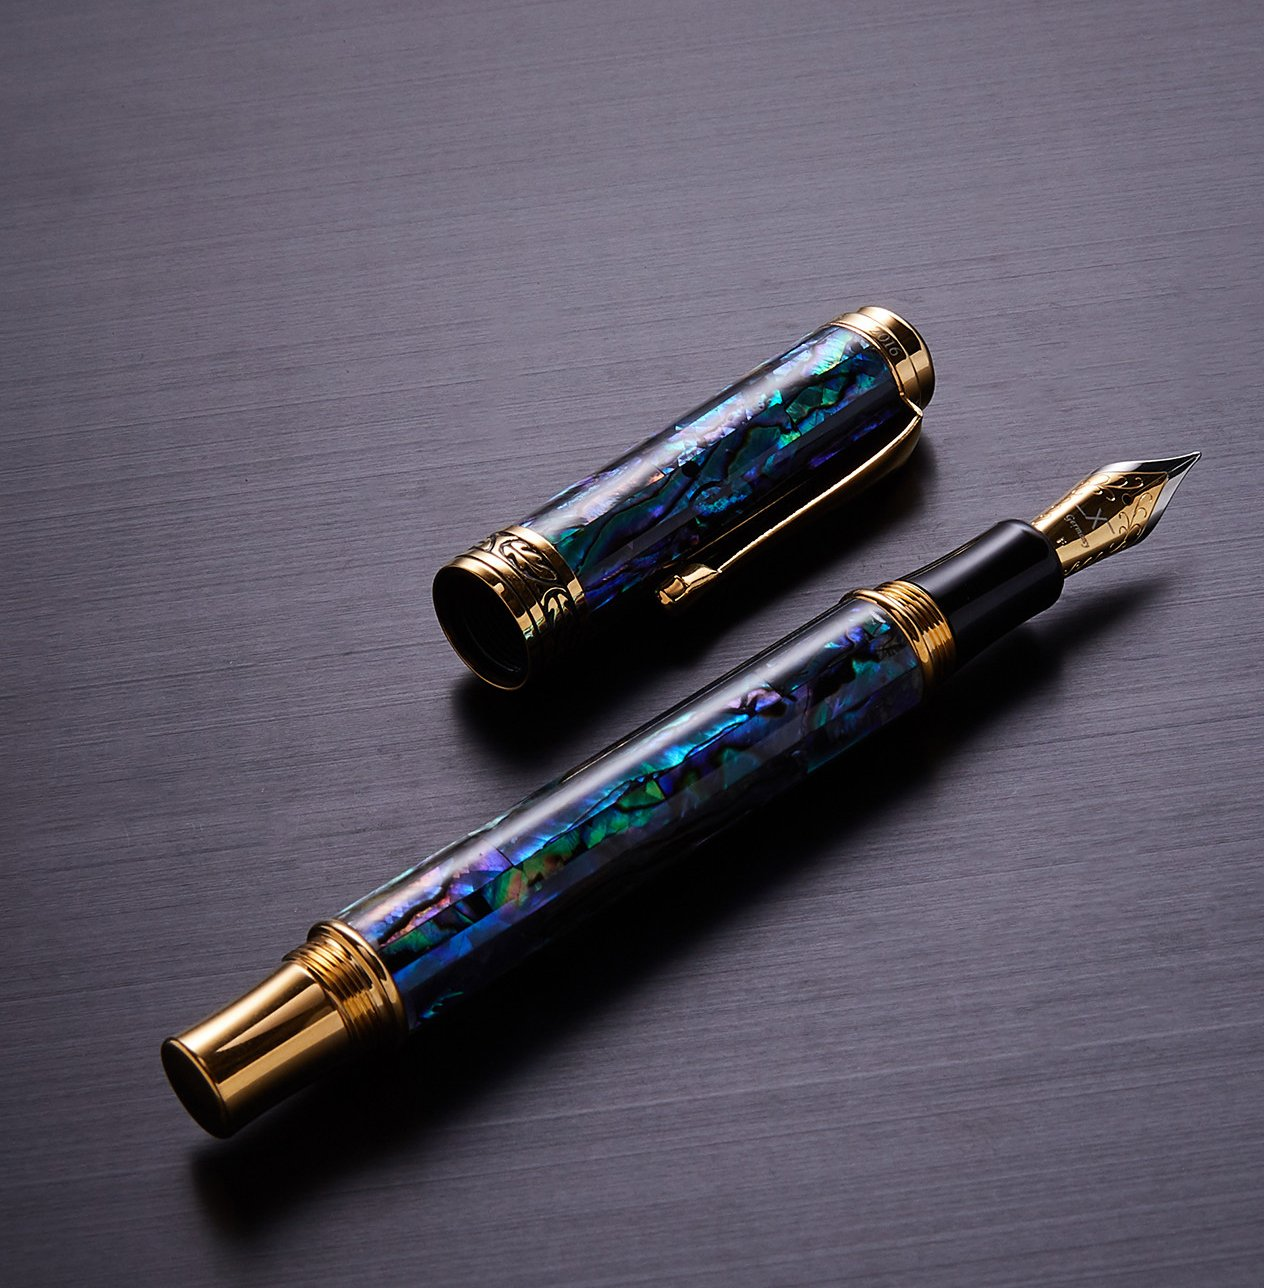 Xezo Maestro Natural Sea Shell Handmade Fountain Pen with 18K Gold Plated Parts. Exquisite Gift. No Two Pens Alike. Fine Nib by Xezo (Image #4)